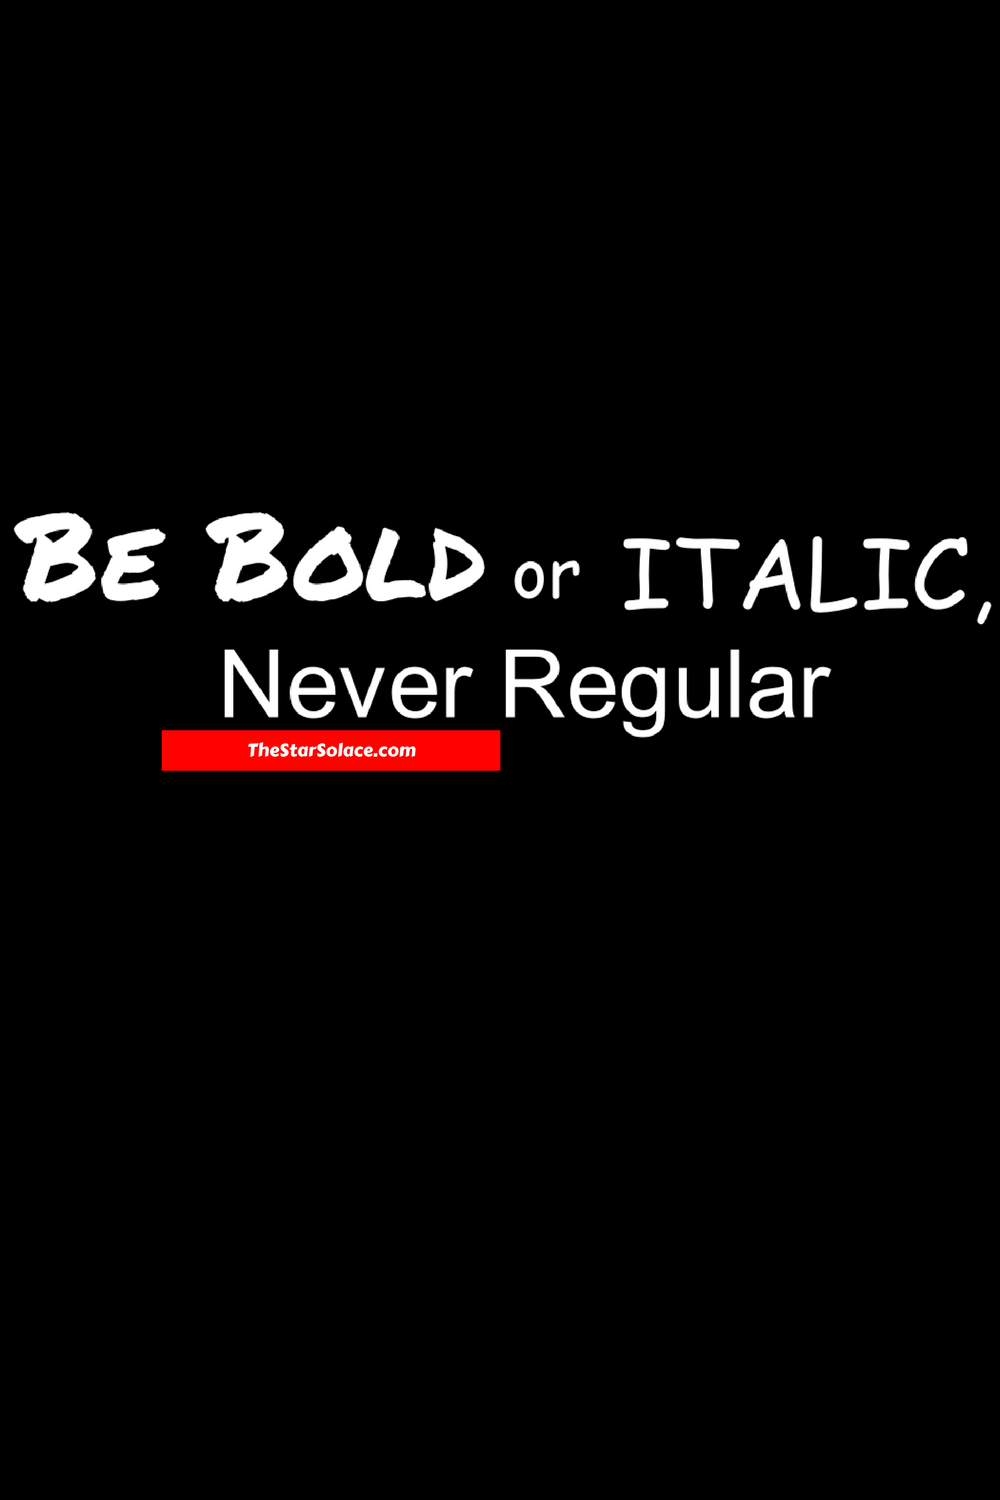 Be BOLD or Italic, never regular.....star solace, motivation, inspiration, life, words, quotes, lifestyle, win, victory